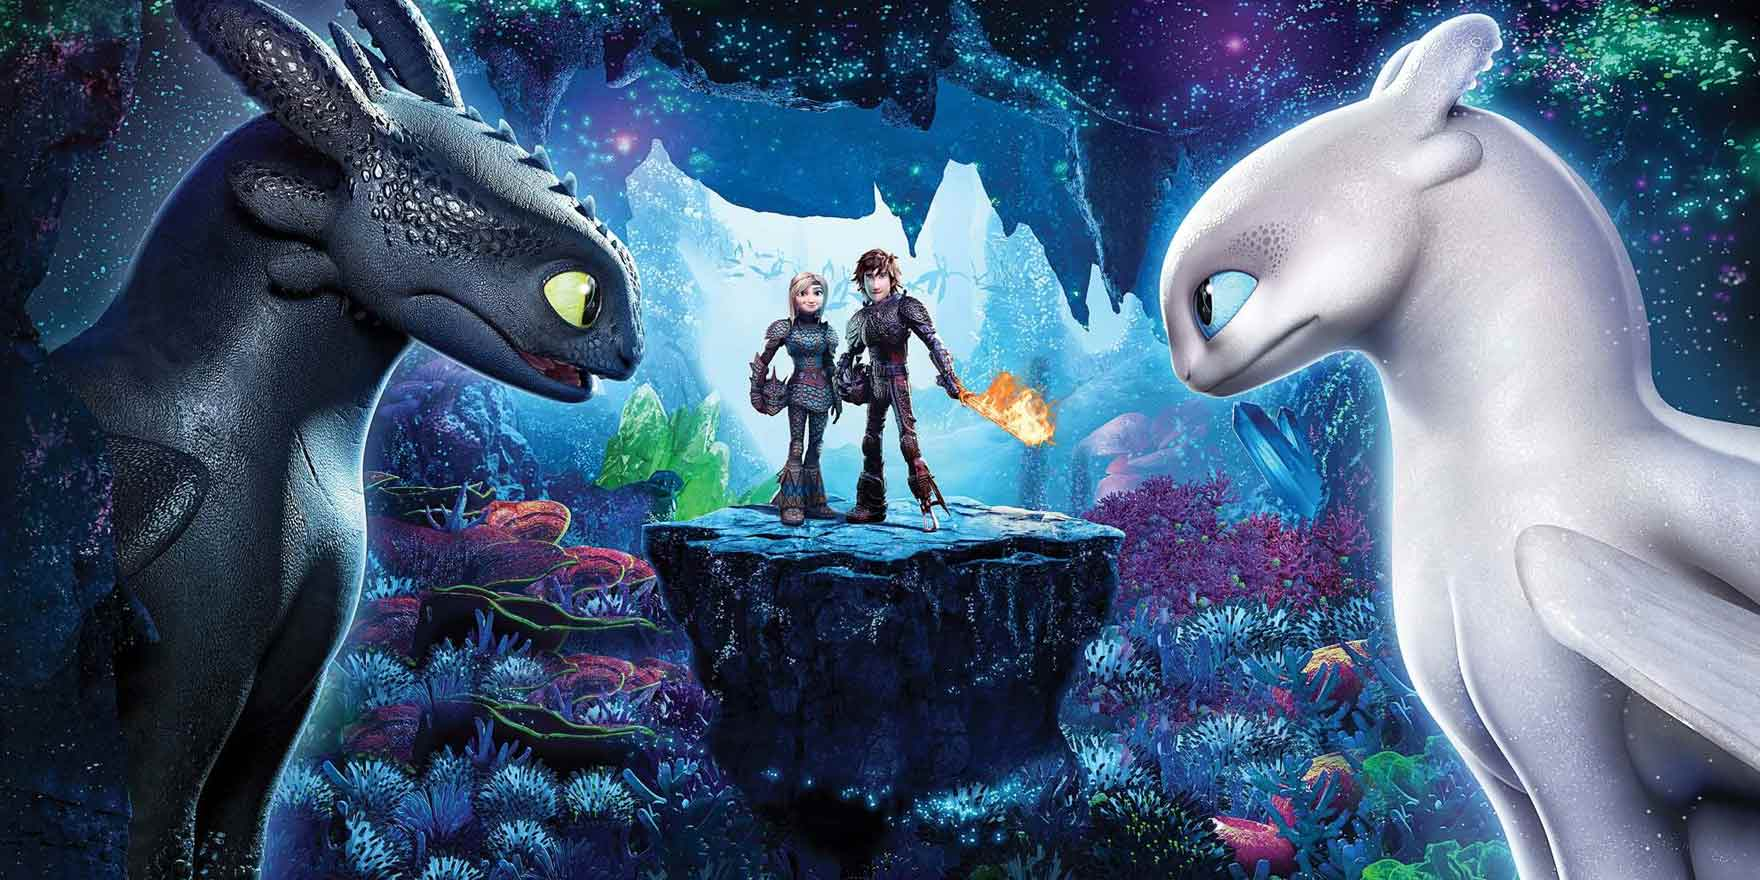 How to Train Your Dragon 3 - Header Image